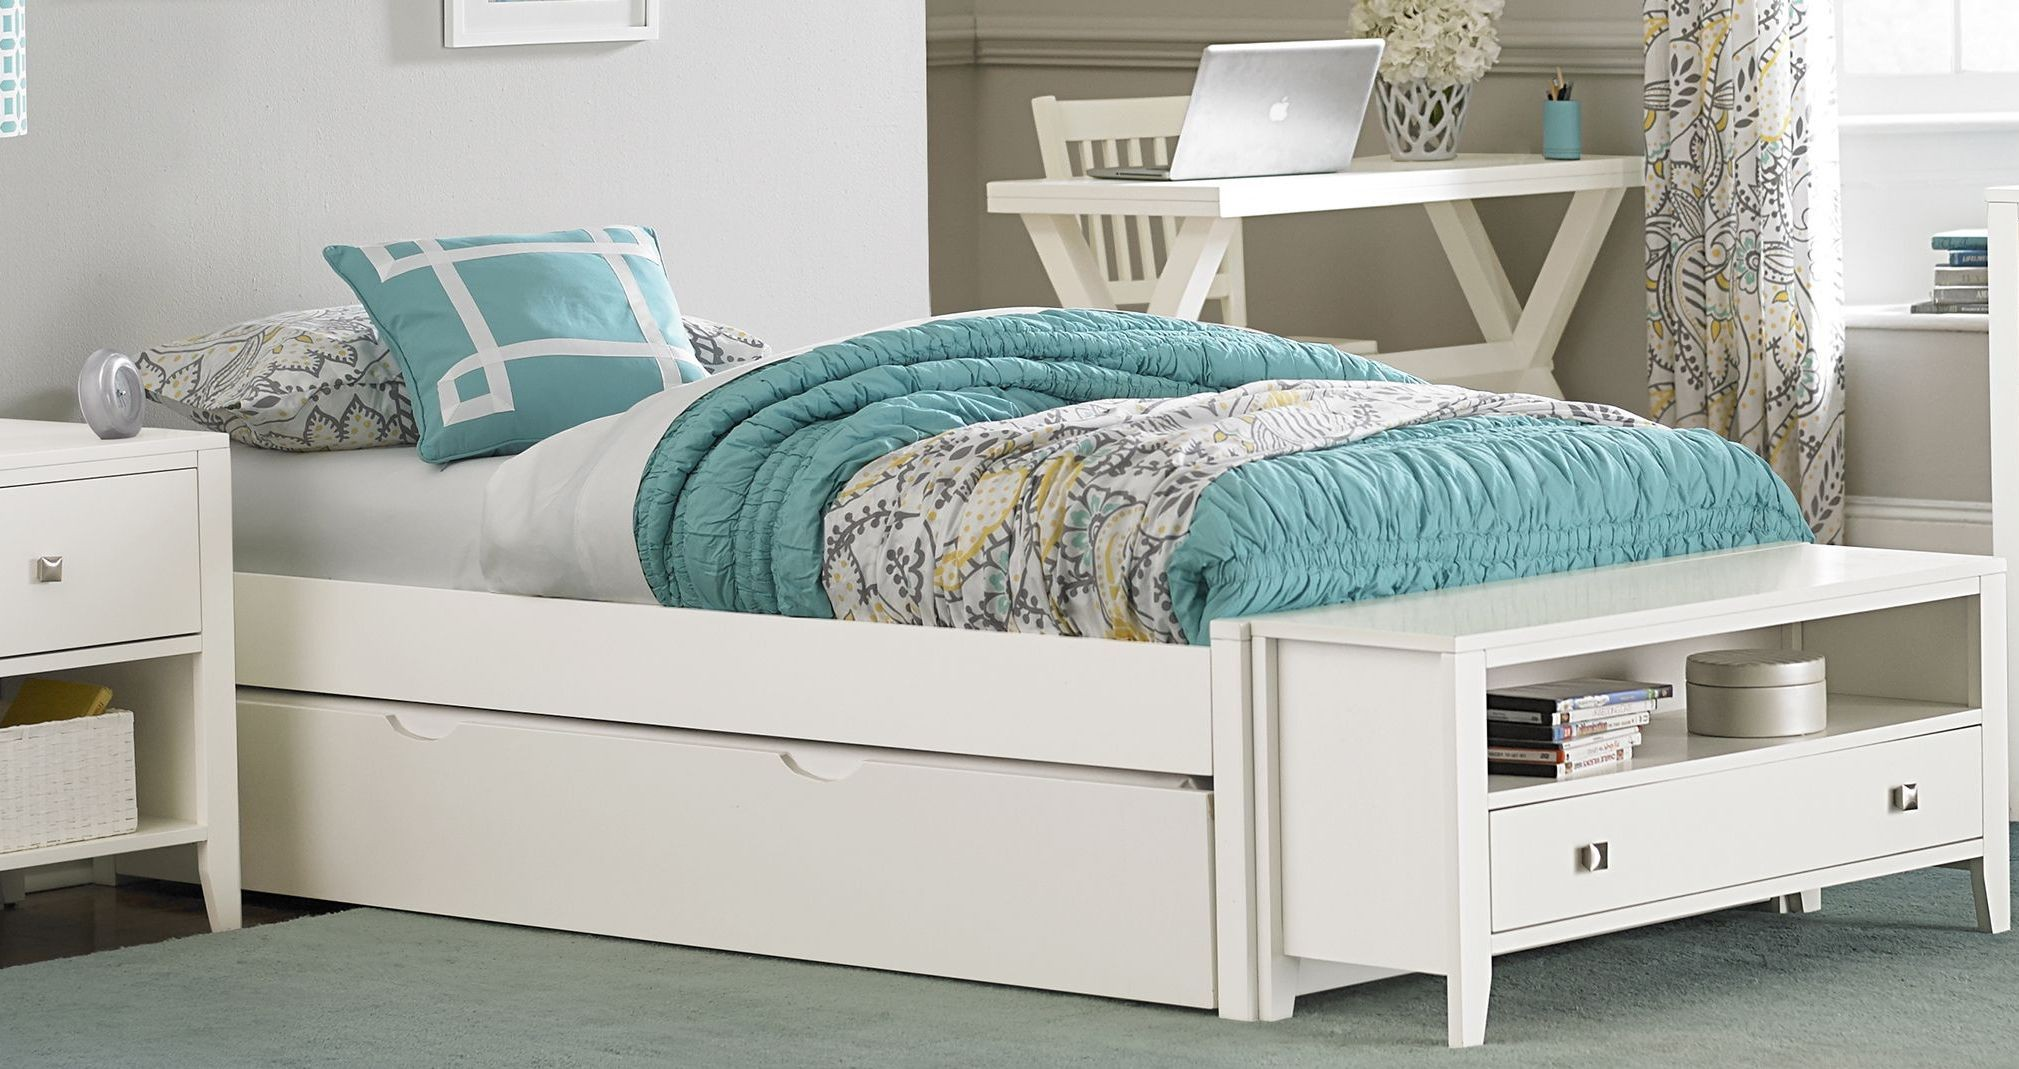 Pulse white twin platform bed with trundle from ne kids coleman furniture White twin trundle bedroom set